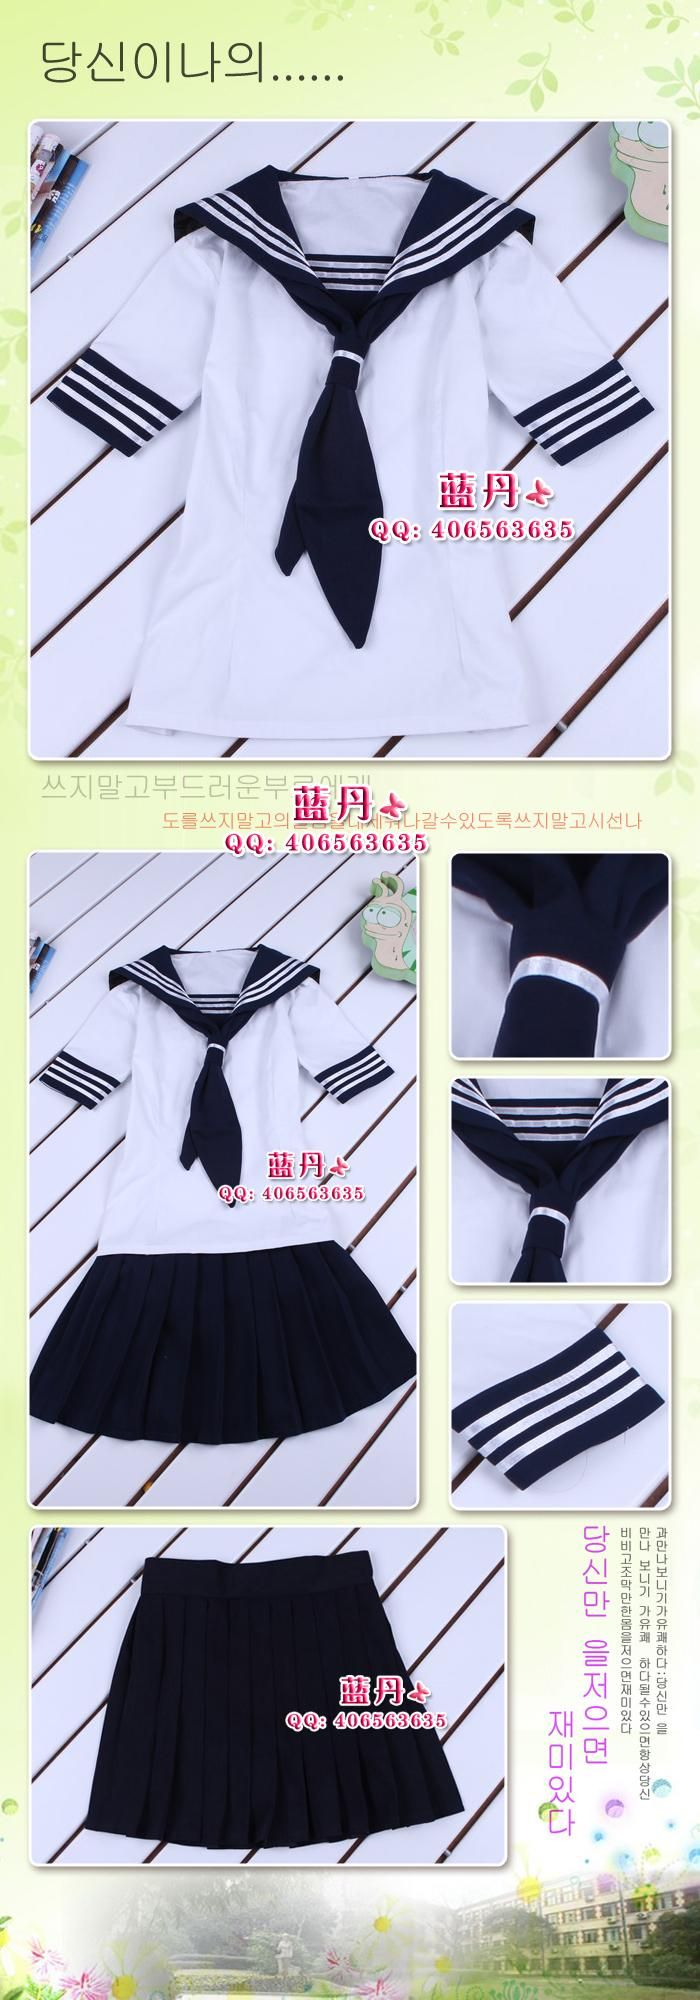 Aliexpress.com : Buy Sailor suit school uniform student uniform girls school uniform black uniform from Reliable school uniform suppliers on Online Store 613280. | Alibaba Group